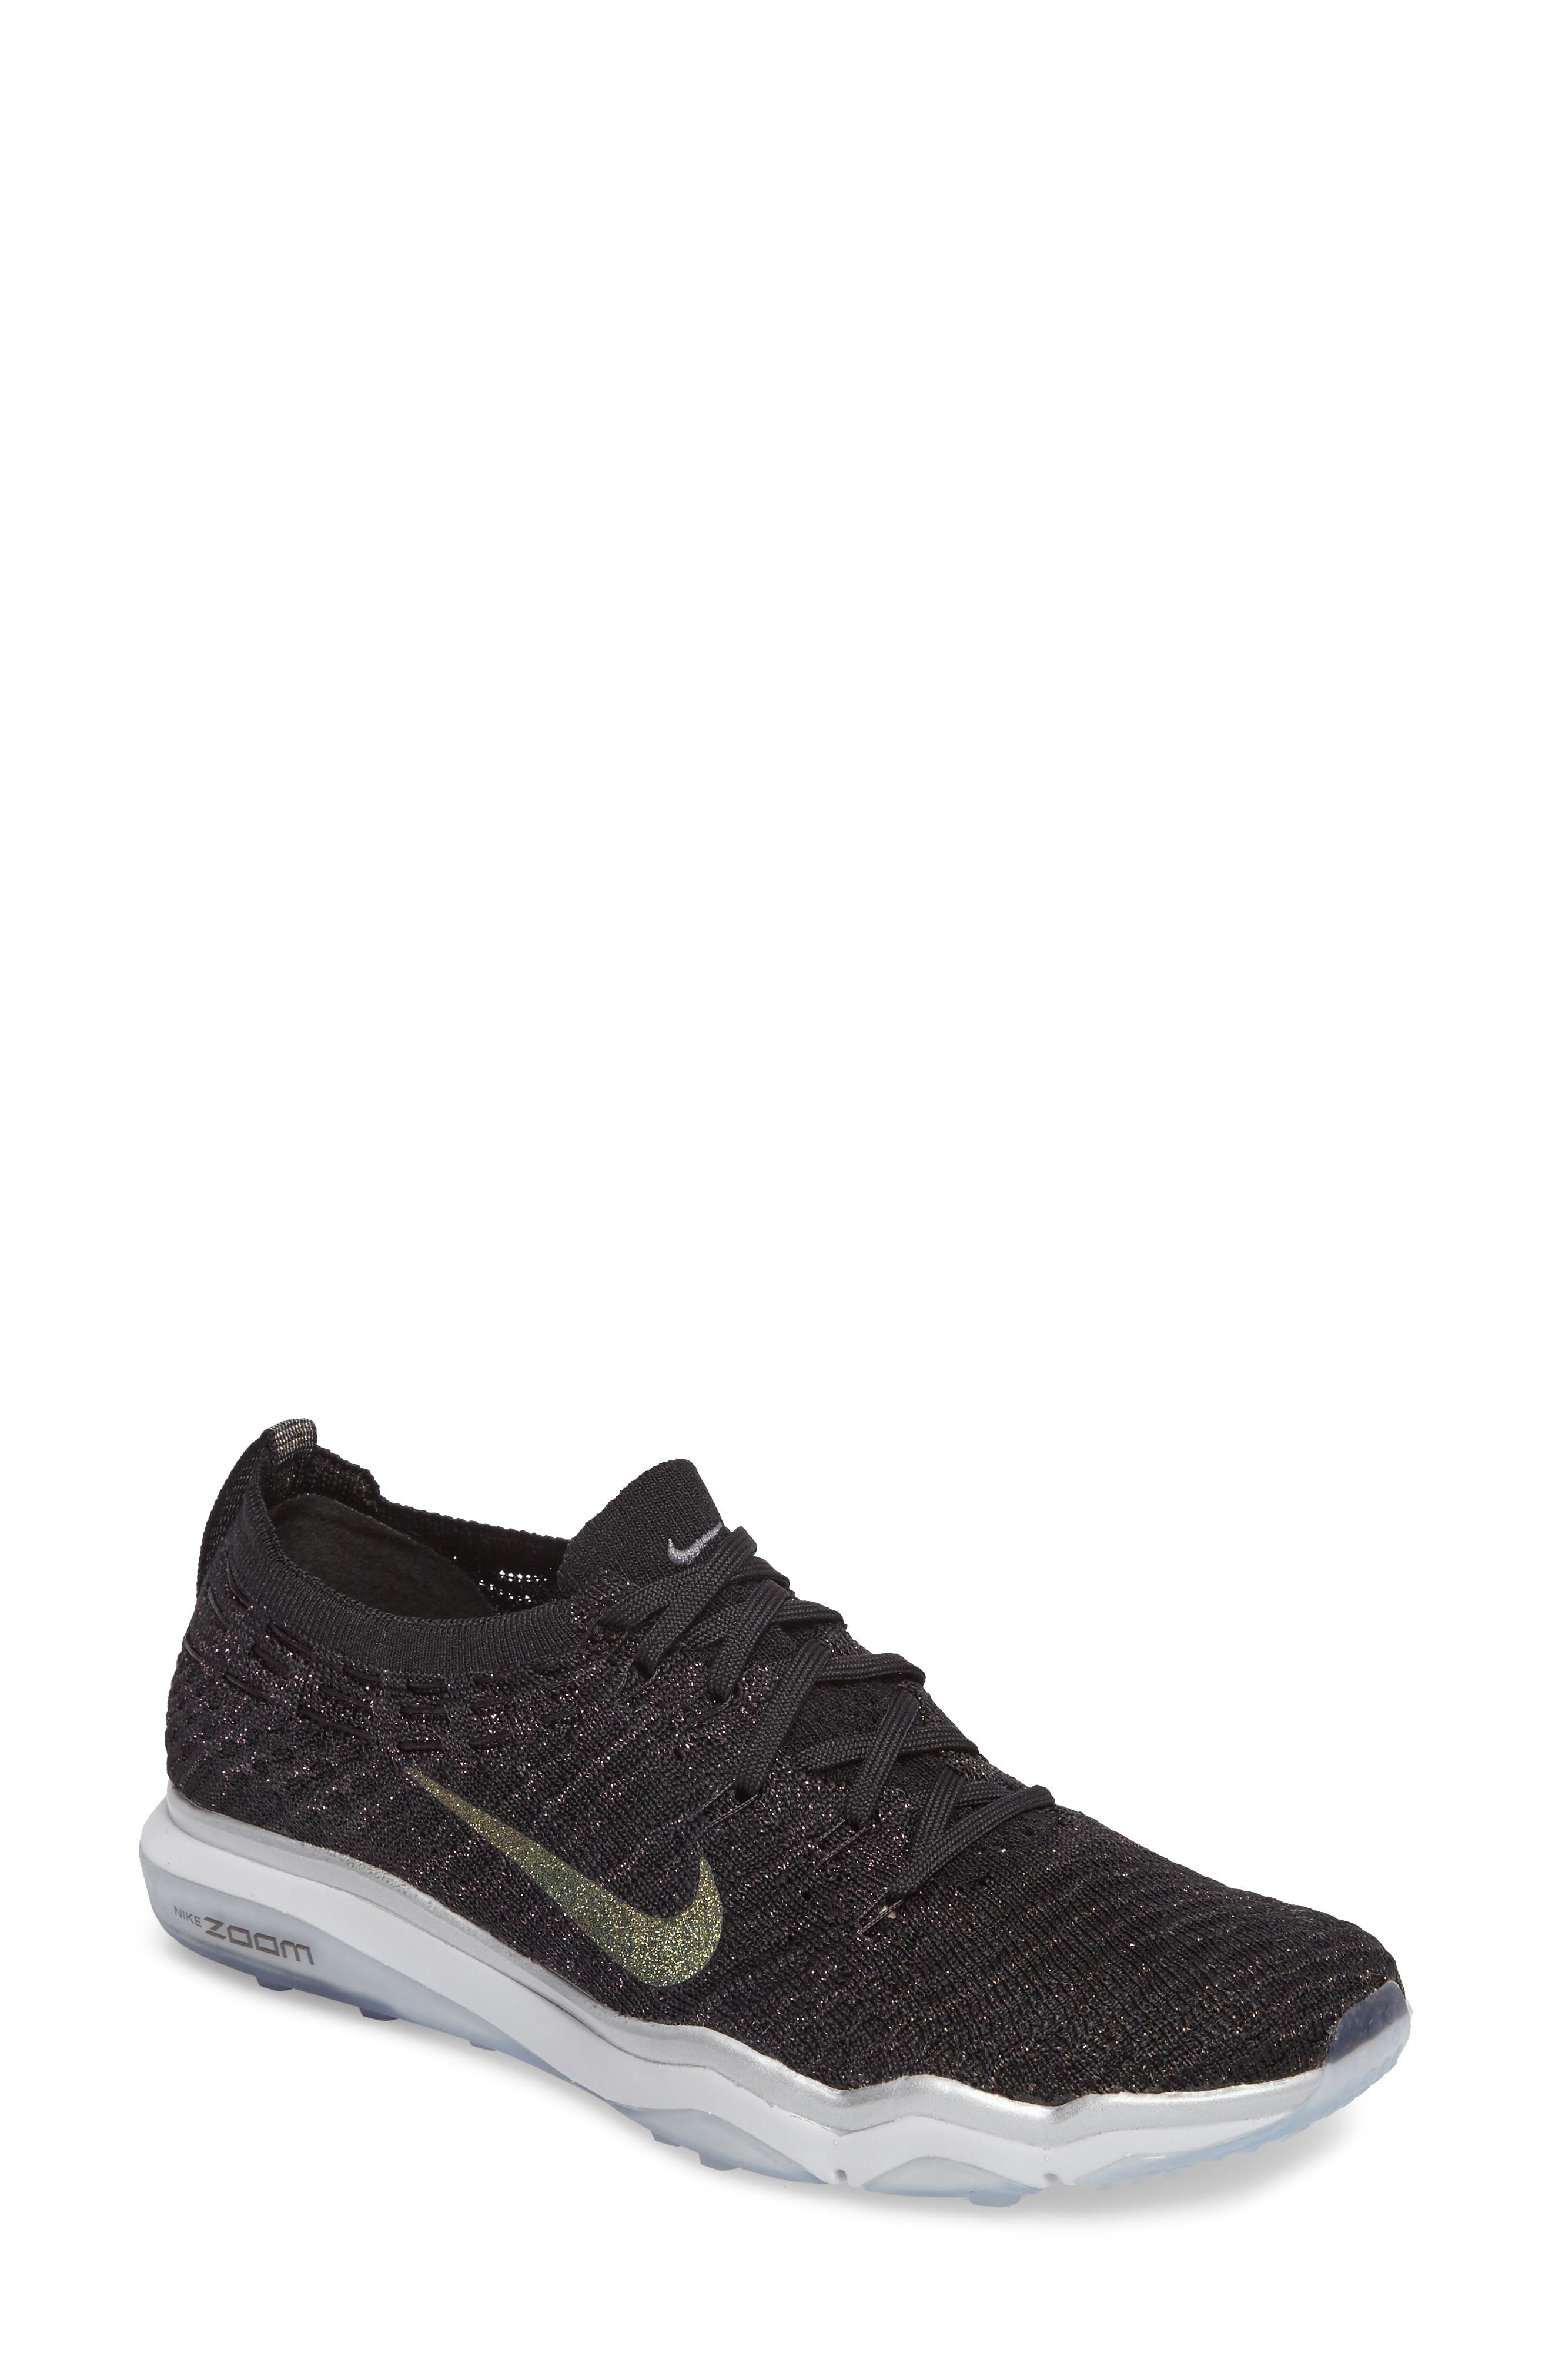 Air Zoom Fearless Flyknit Metallic Training Shoe,                             Main thumbnail 1, color,                             Black/ Dark Grey/ Silver